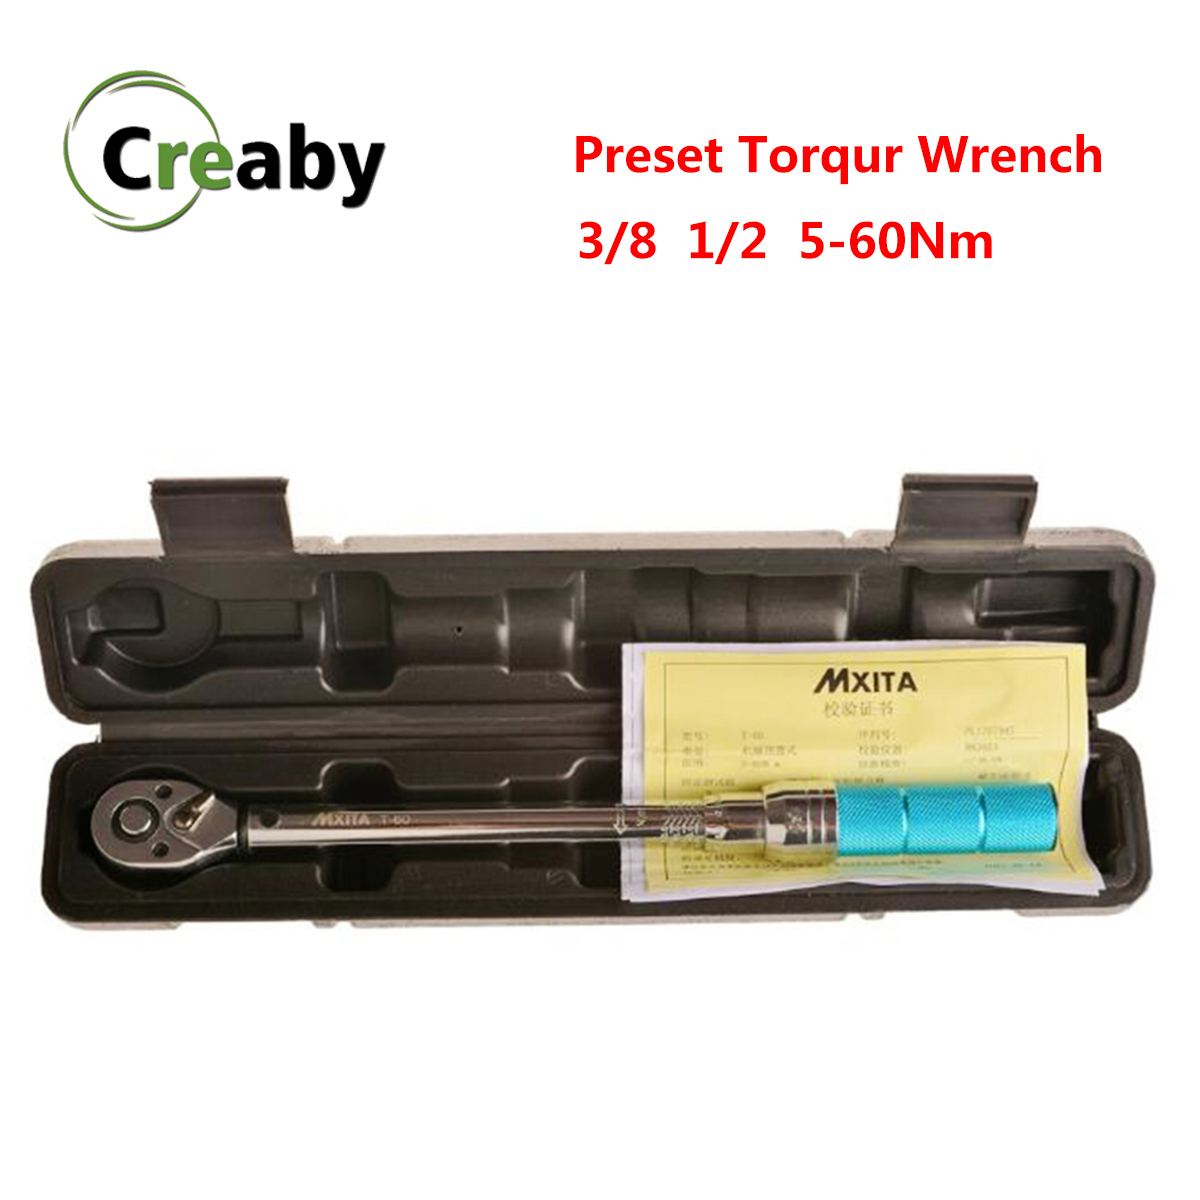 High Precision Adjustable Preset Torque Wrench 1 2 3 8 5-60Nm Ratchet Spanner Wrench Repair Hand Tool